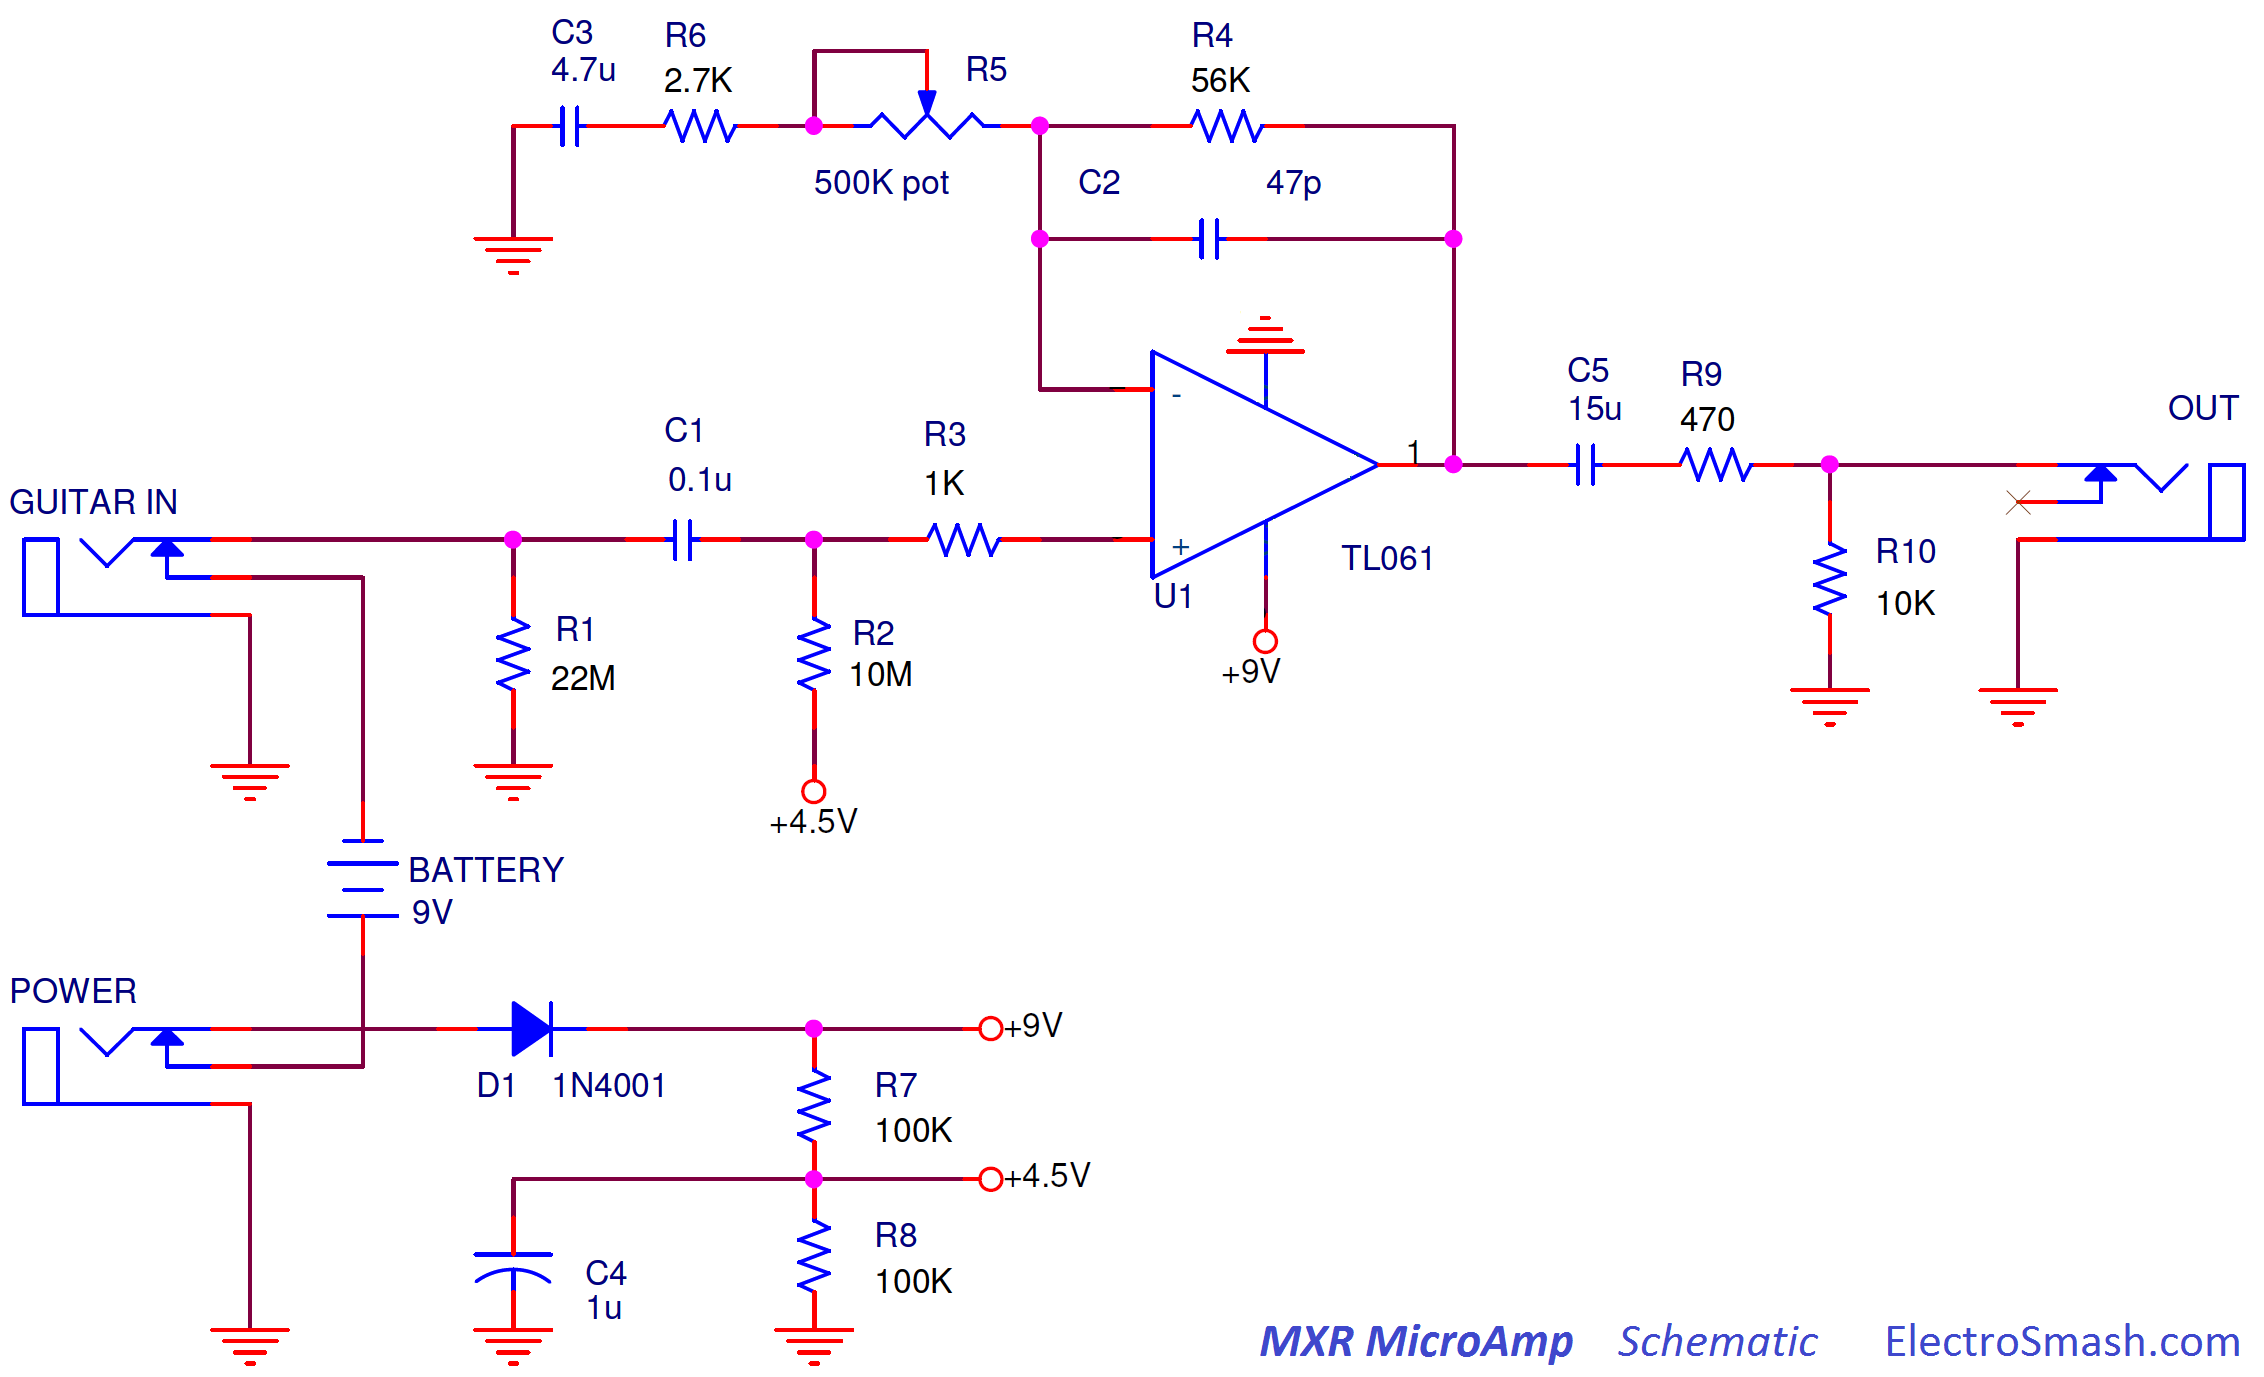 electrosmash mxr microamp analysis the mxr micro amp circuit can be divided into two blocks power supply stage and the op amp amplifier mxr microamp schematic